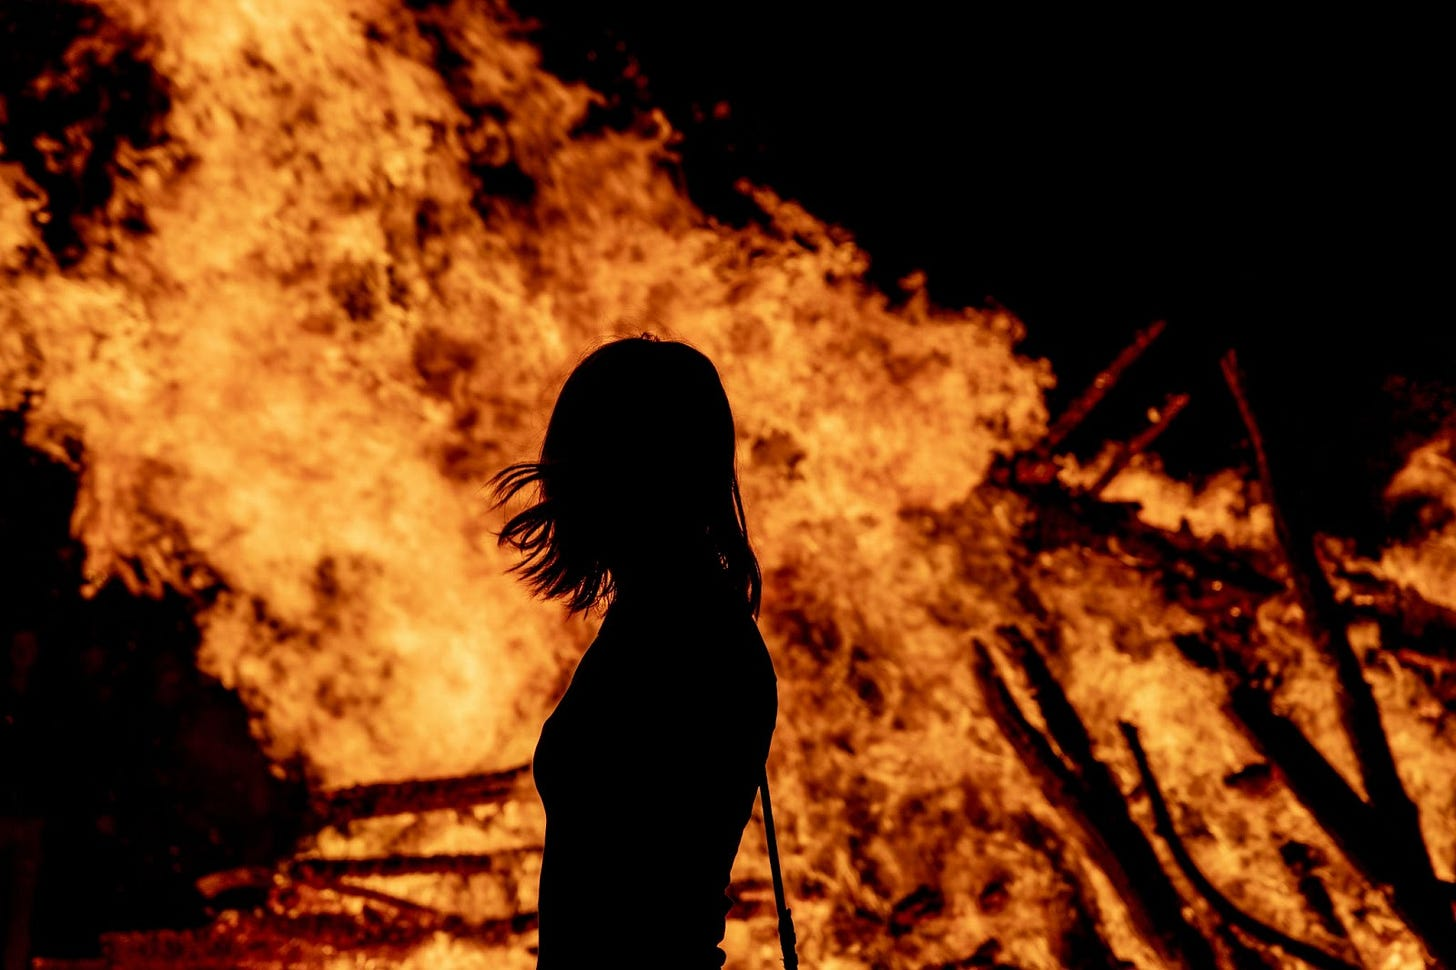 Image of fire burning with long-haired person profiled from behind, seeing just their outline